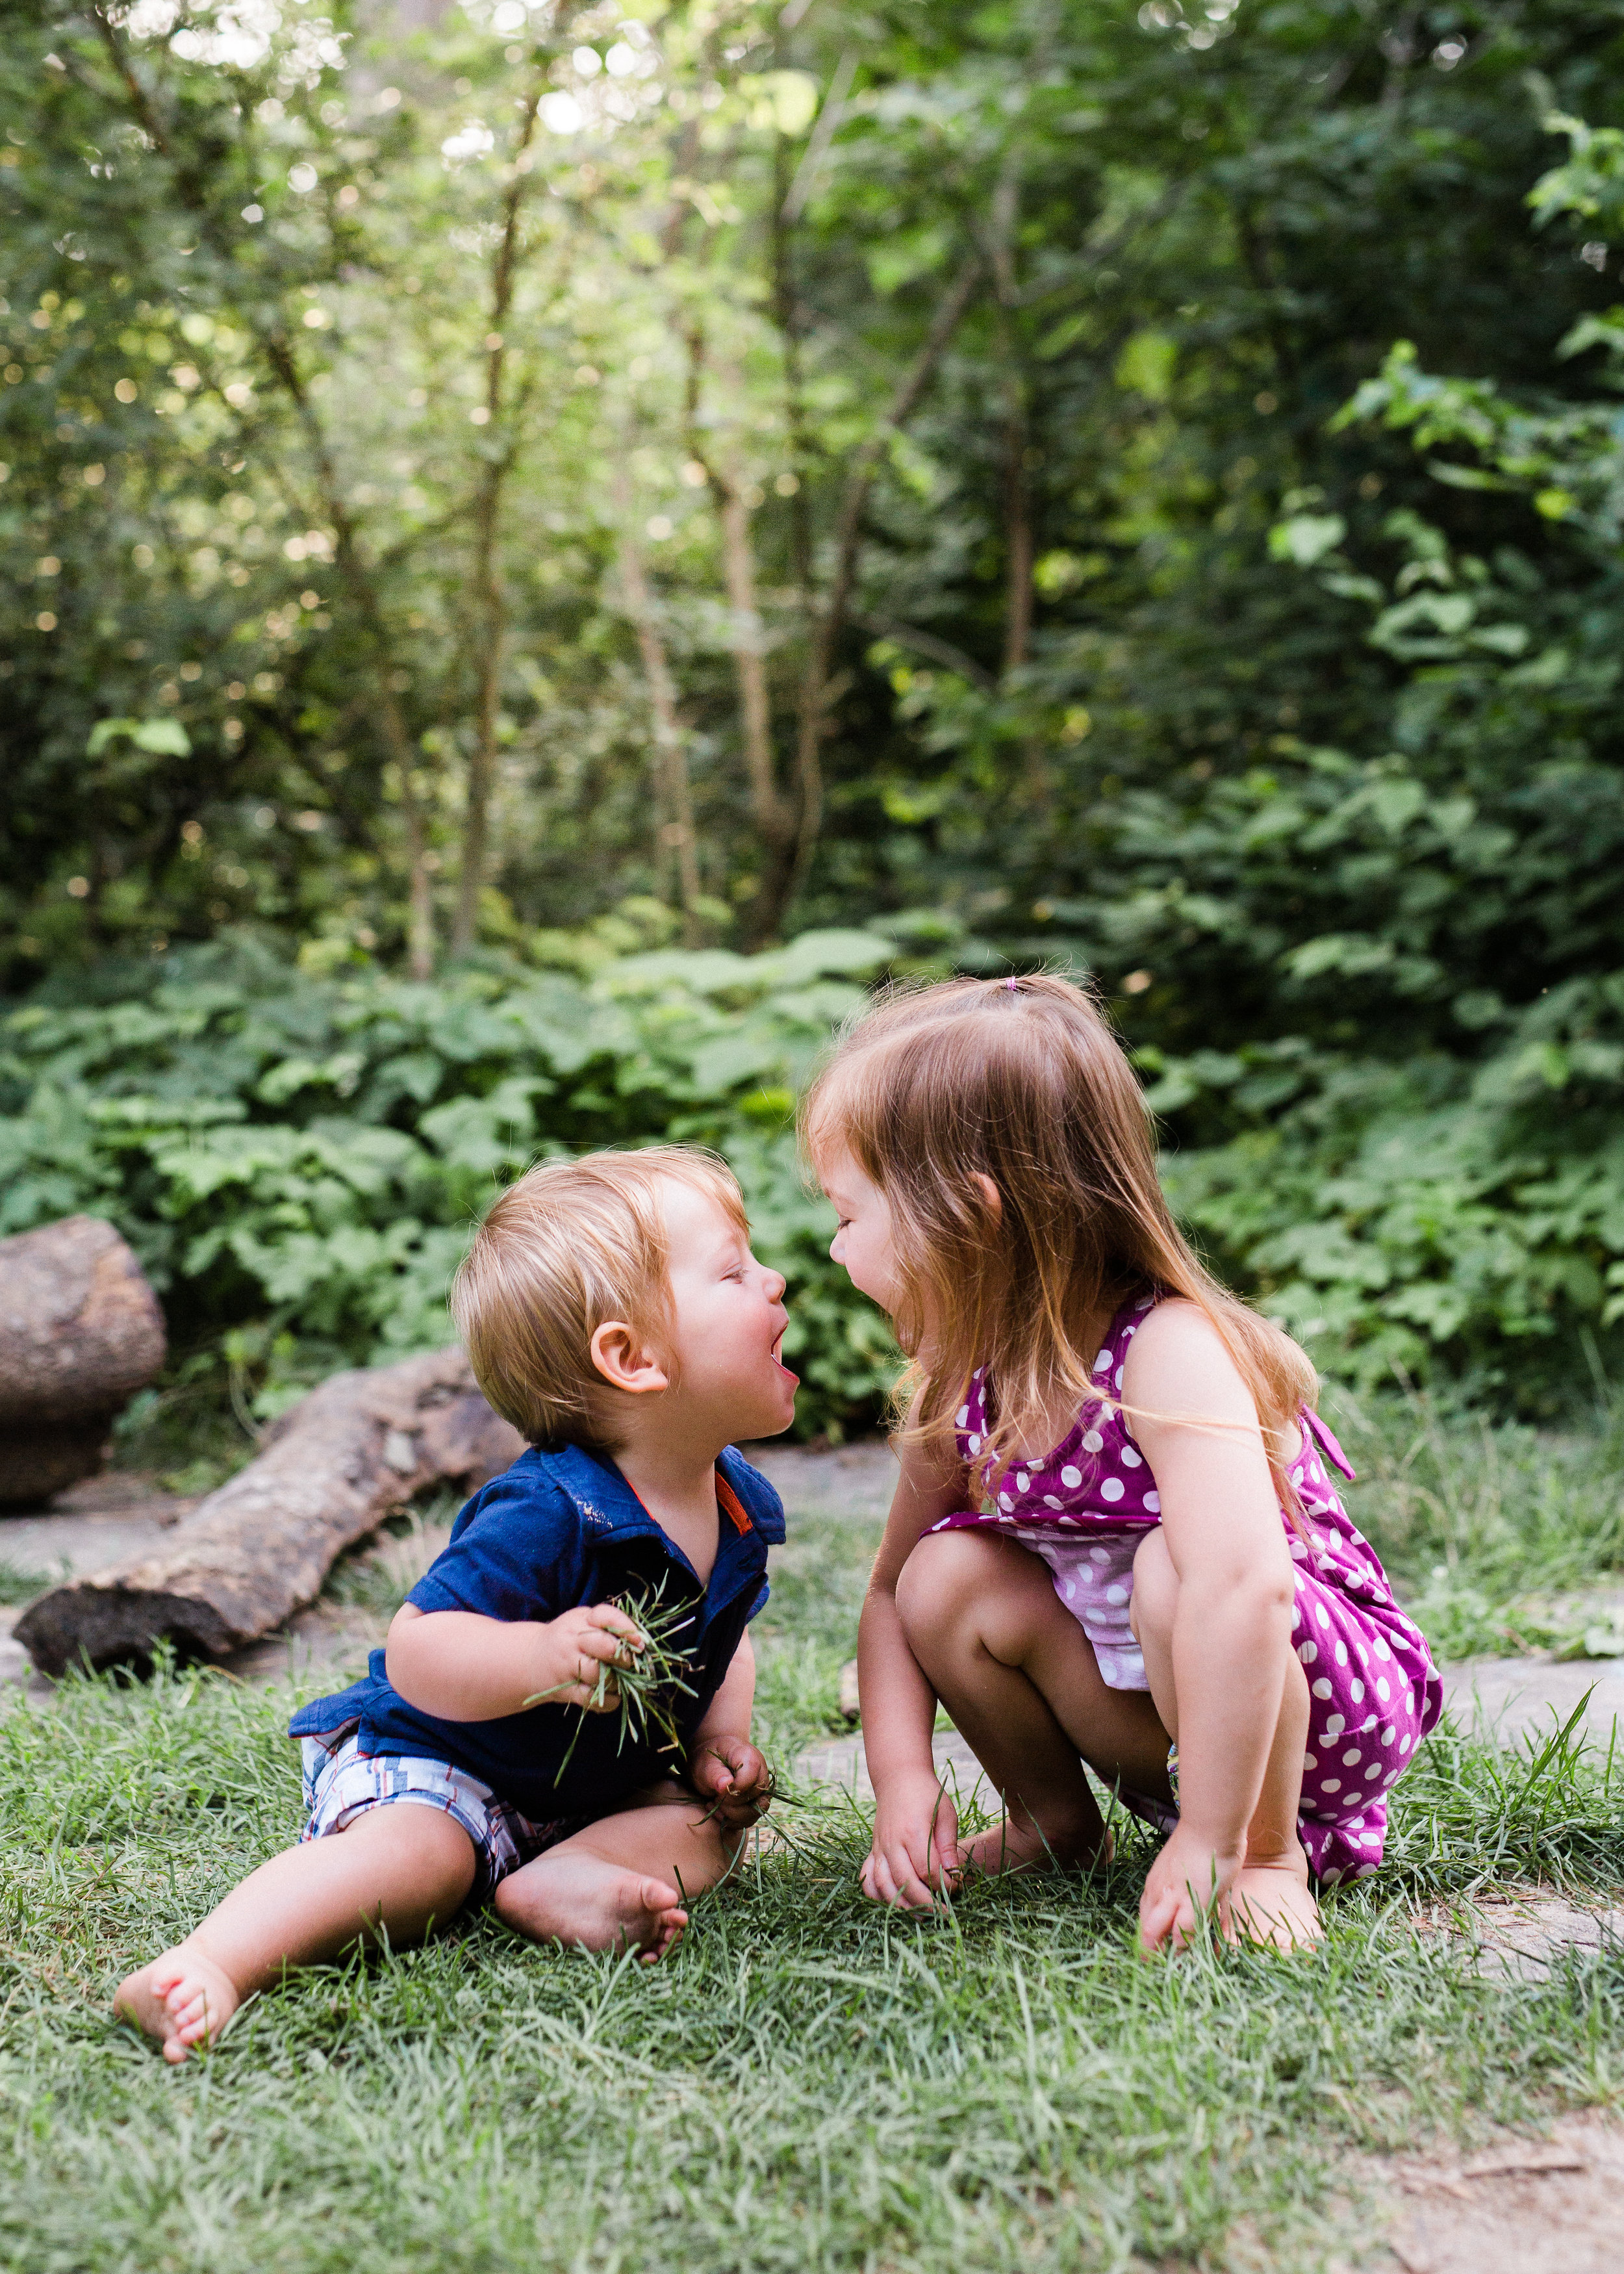 prospect-park-family-photography_natural-playground-22-3.jpg